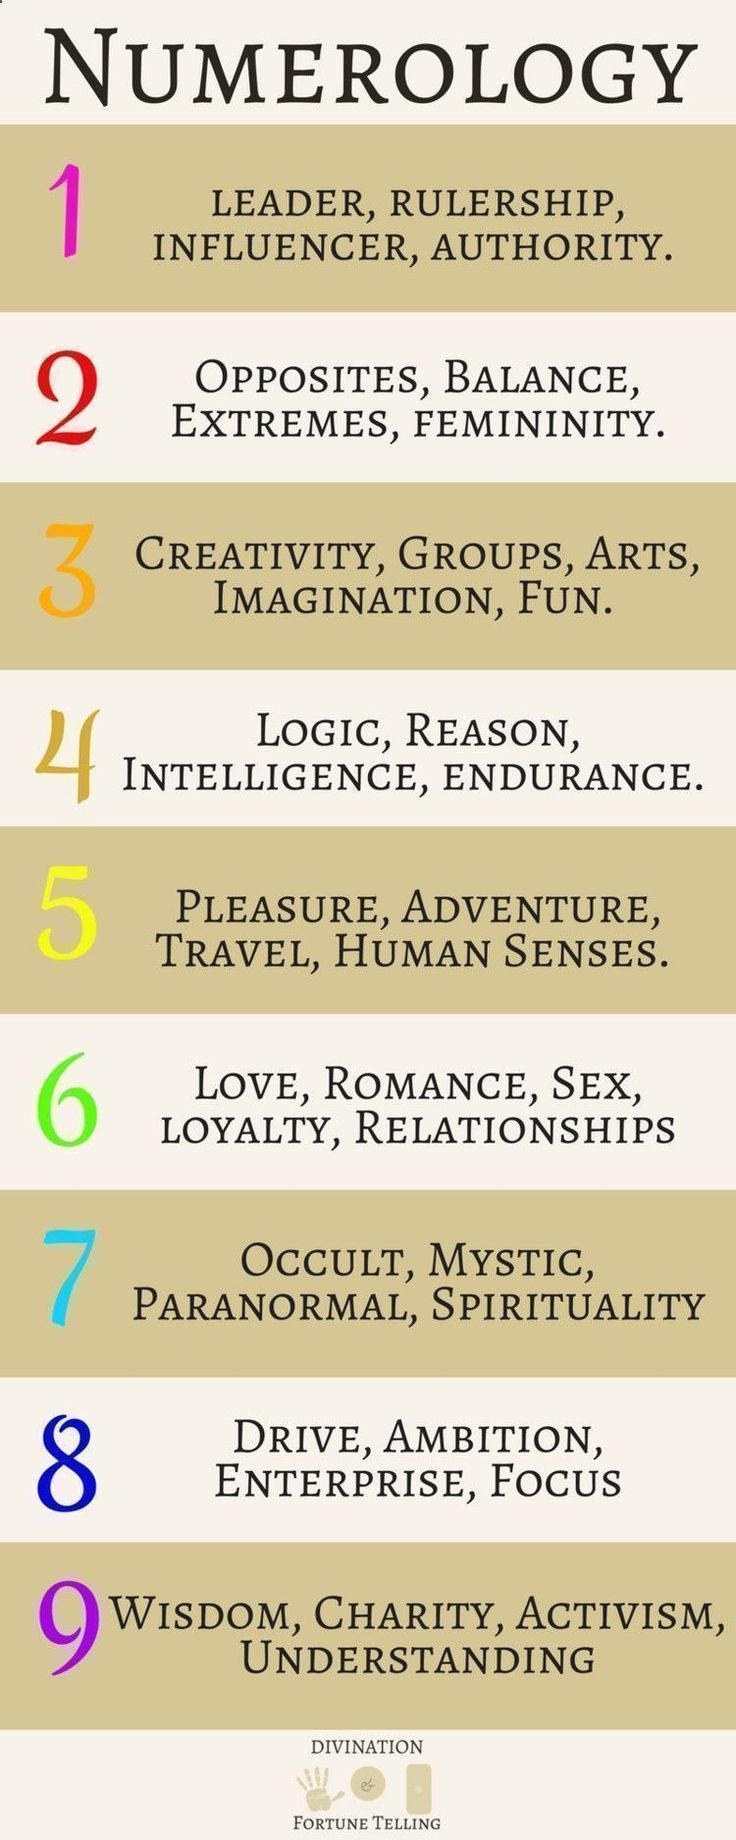 14478 best numerology images on pinterest numerology calculation this post includes how to make the calculation not all numbers are related to spirituality or compatibility nvjuhfo Choice Image